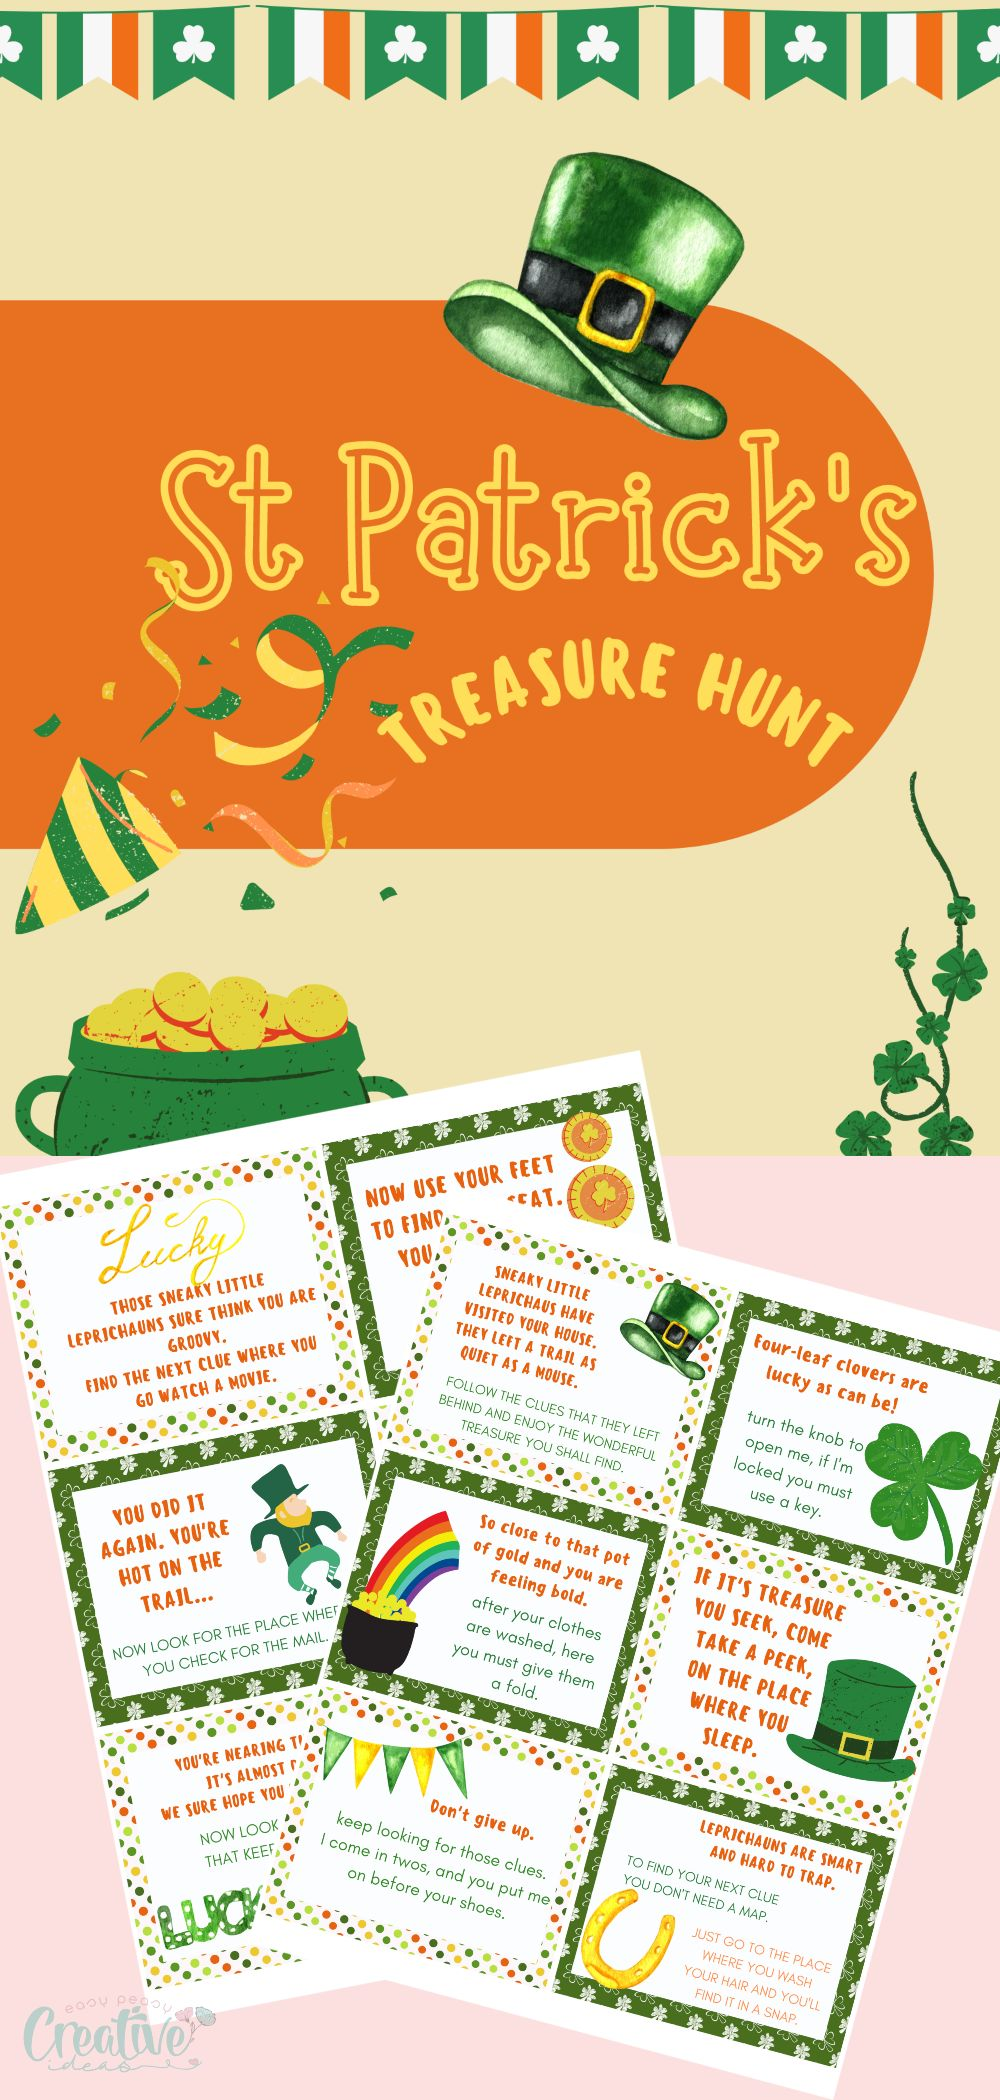 With the help of my St Patrick's day printable, you can quickly and easily set up your own adventure for St. Patrick's Day. via @petroneagu